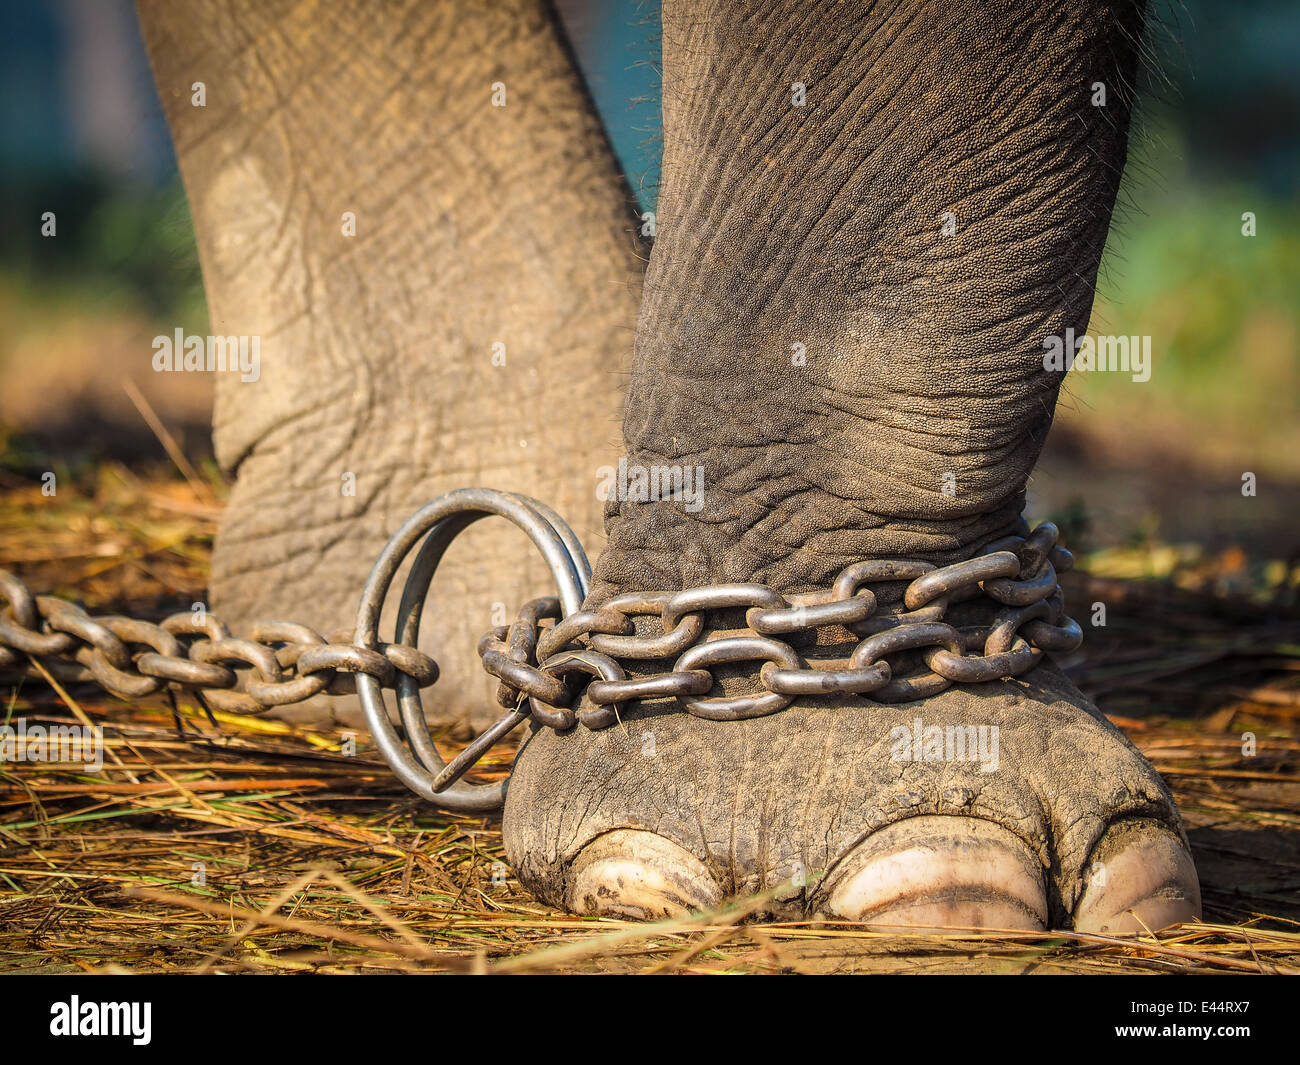 Closeup of an elephant's foot tied to a metal chain Stock Photo